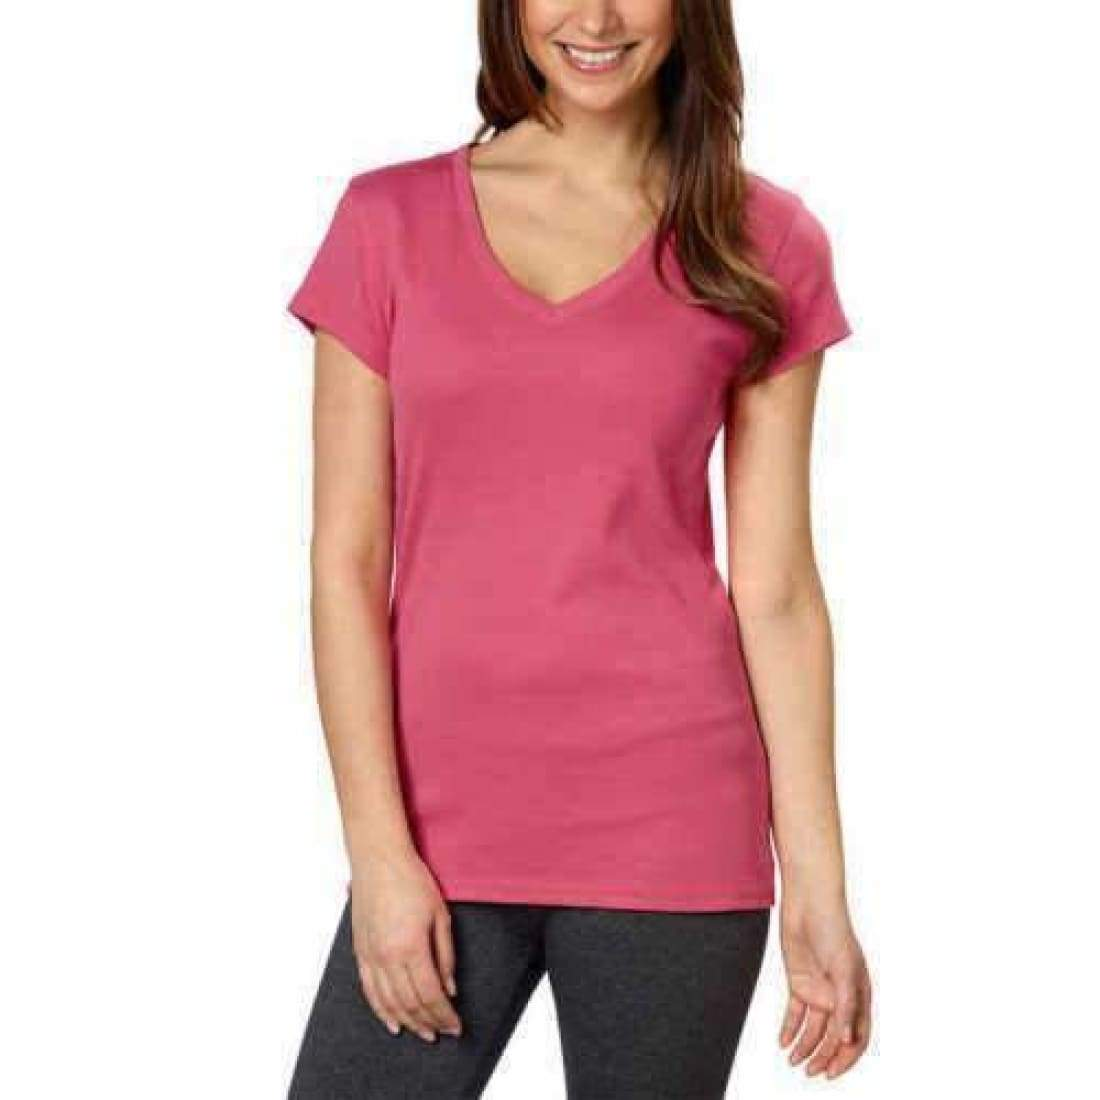 Kirkland Signature Womens Cotton V-Neck Tee M / Pink Tops & Blouses